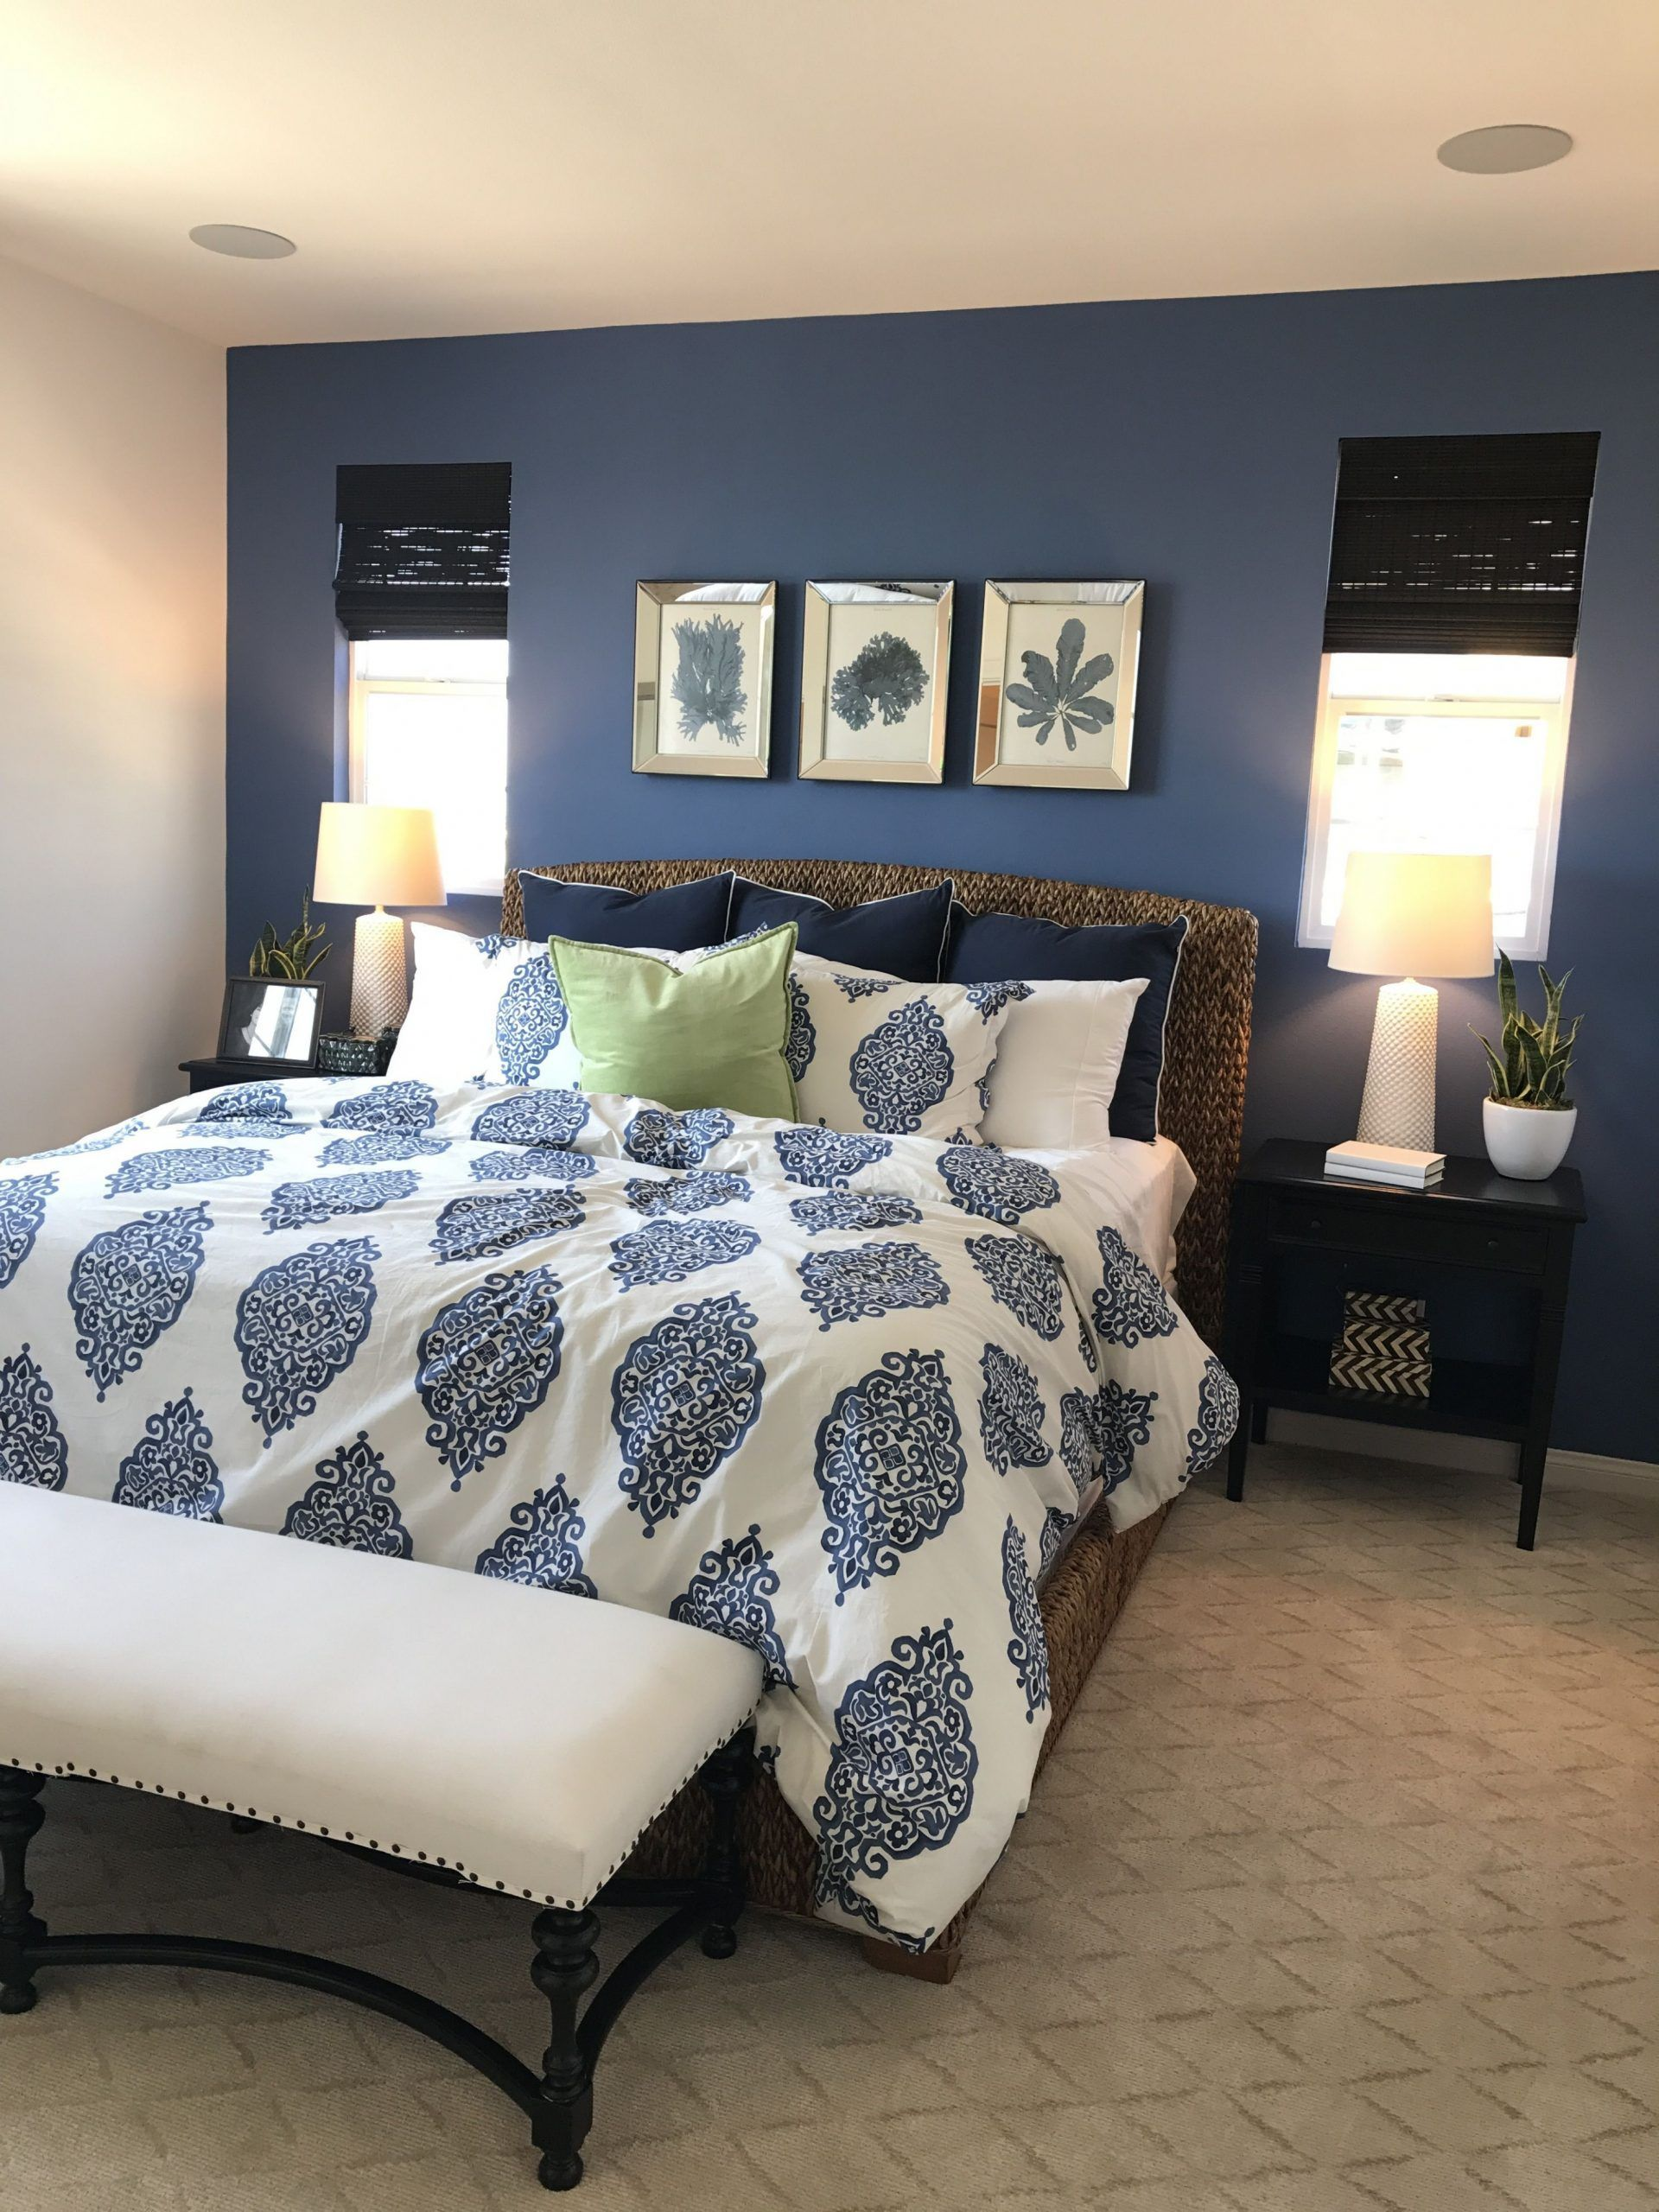 Pin by Josie moon on Home decor in 2020 Blue master